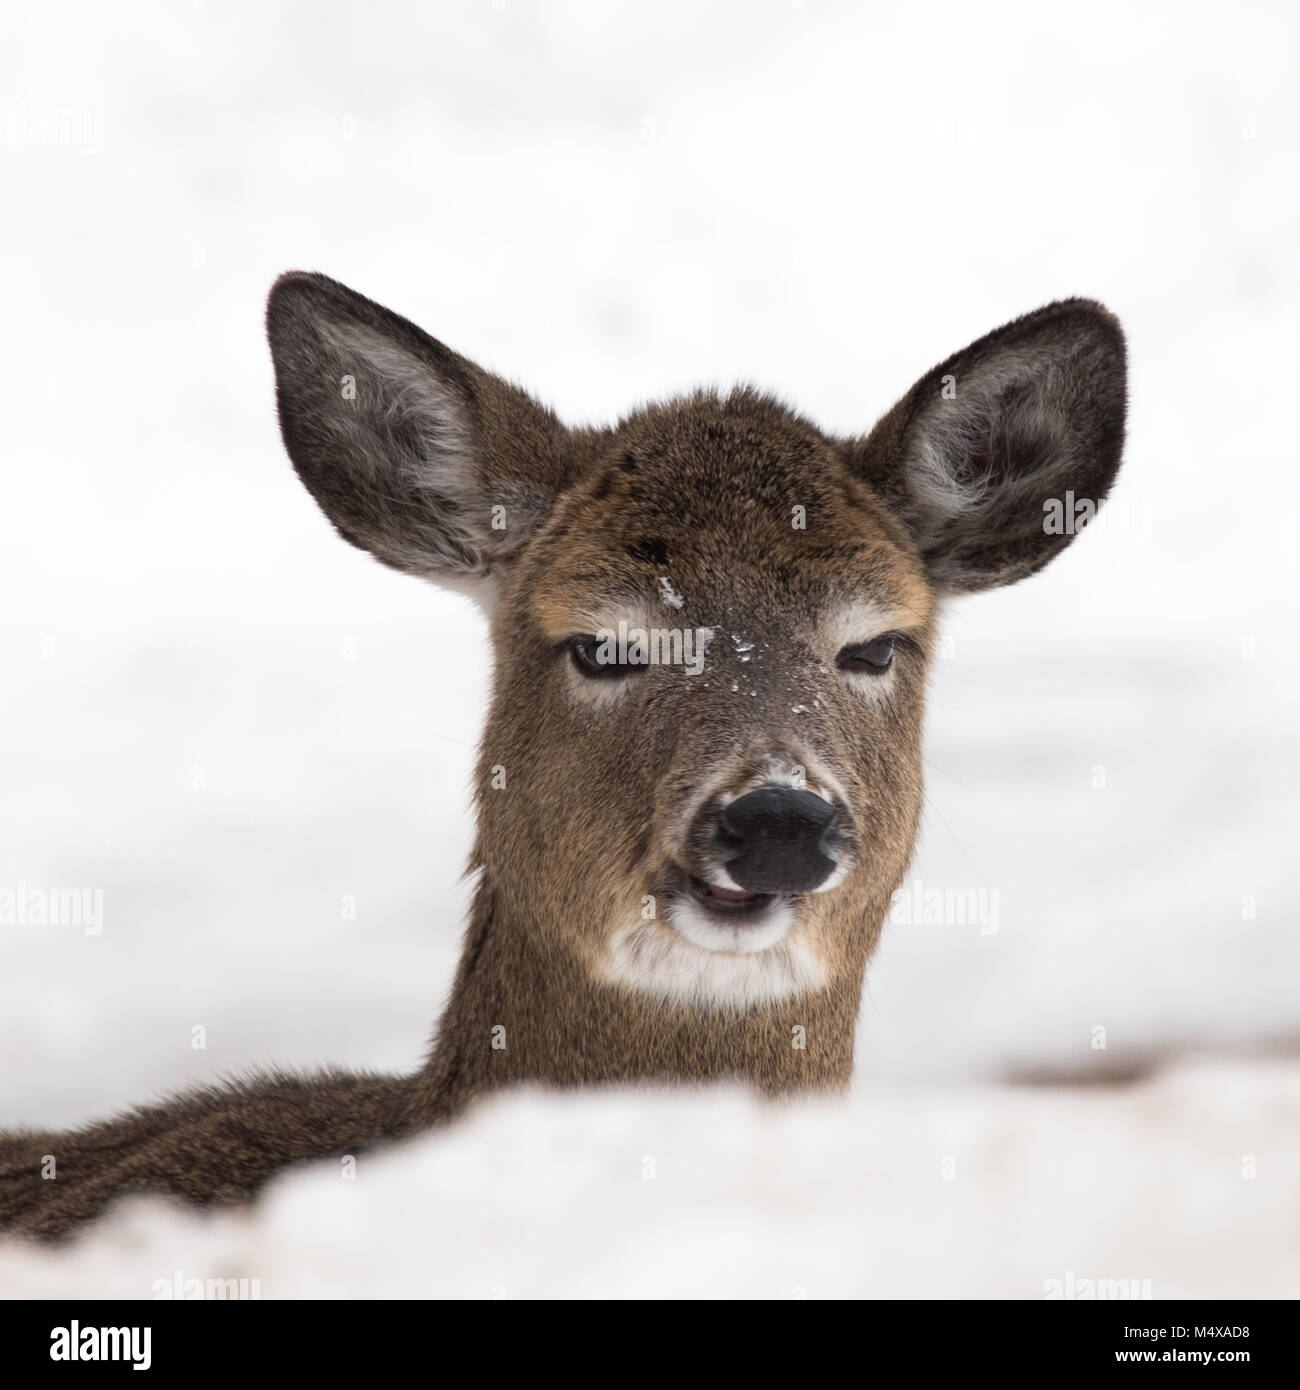 a-whitetail-deer-in-the-adirondack-mount